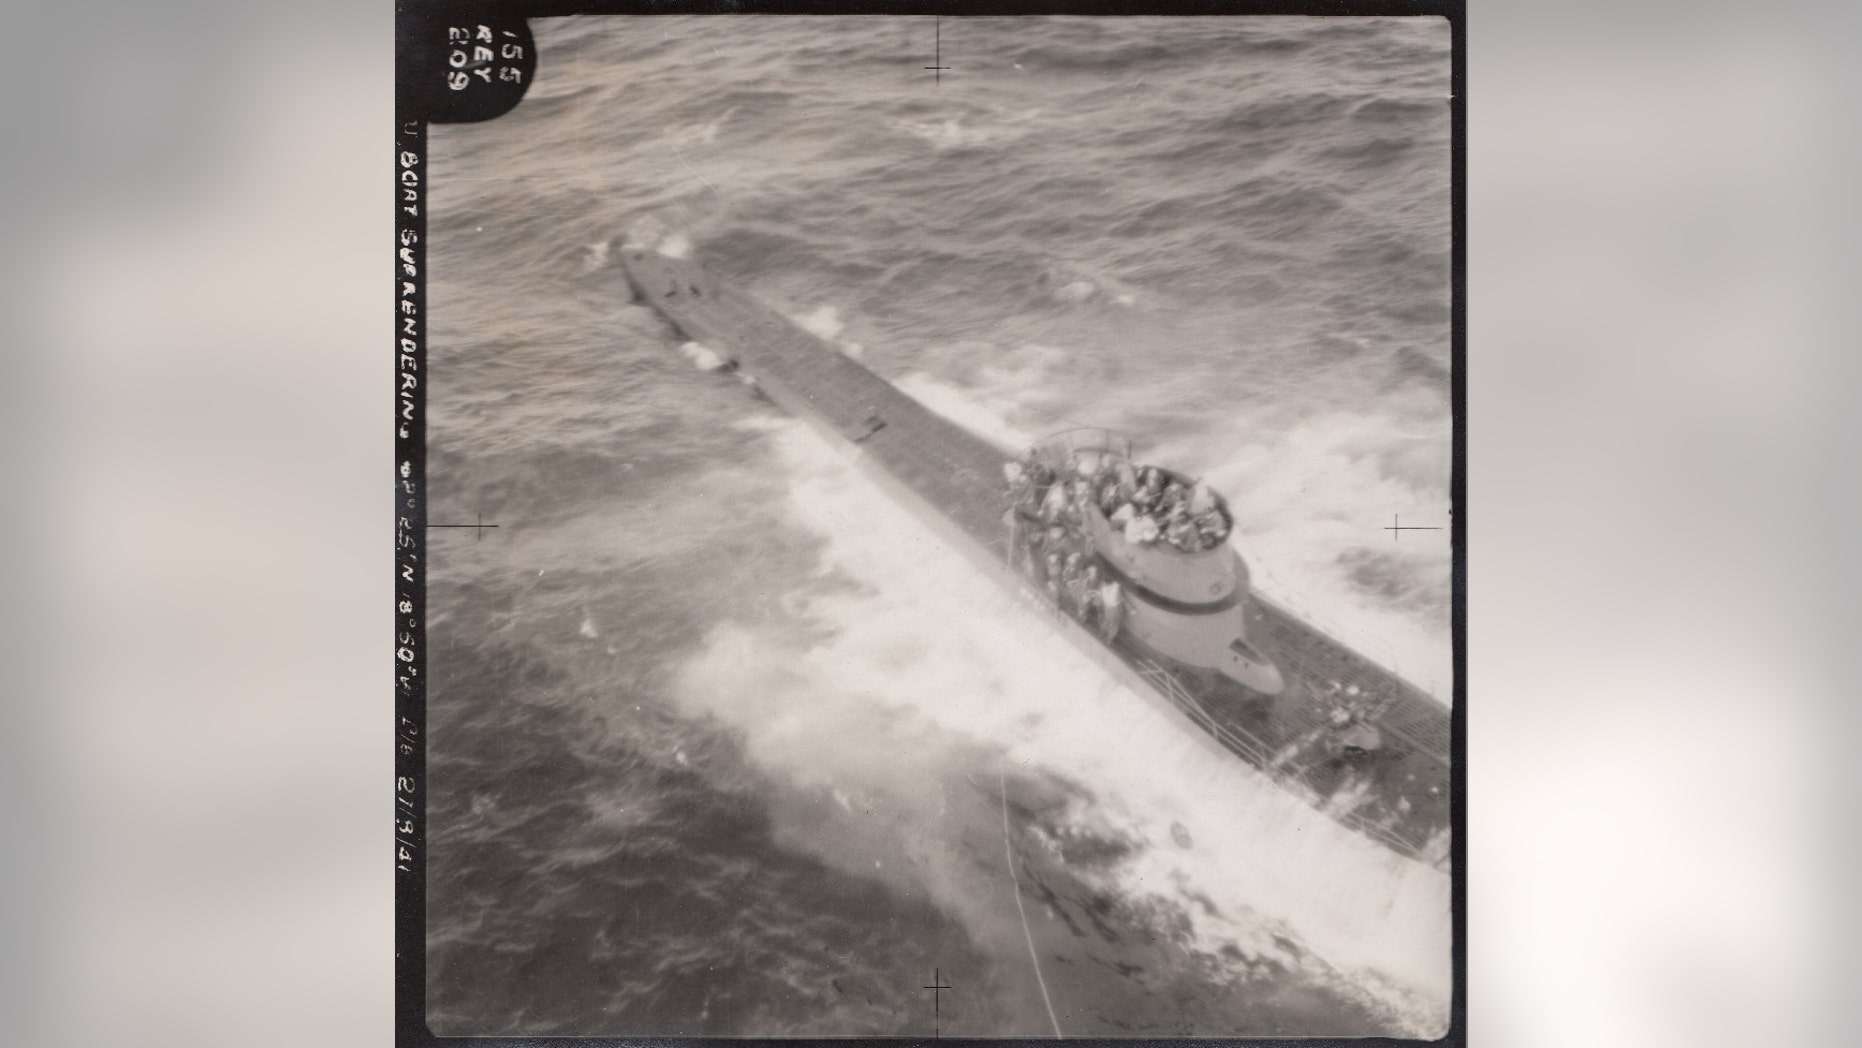 An aerial picture showing the dramatic capture of German submarine U-571 during World War II (Henry Aldridge & Son)